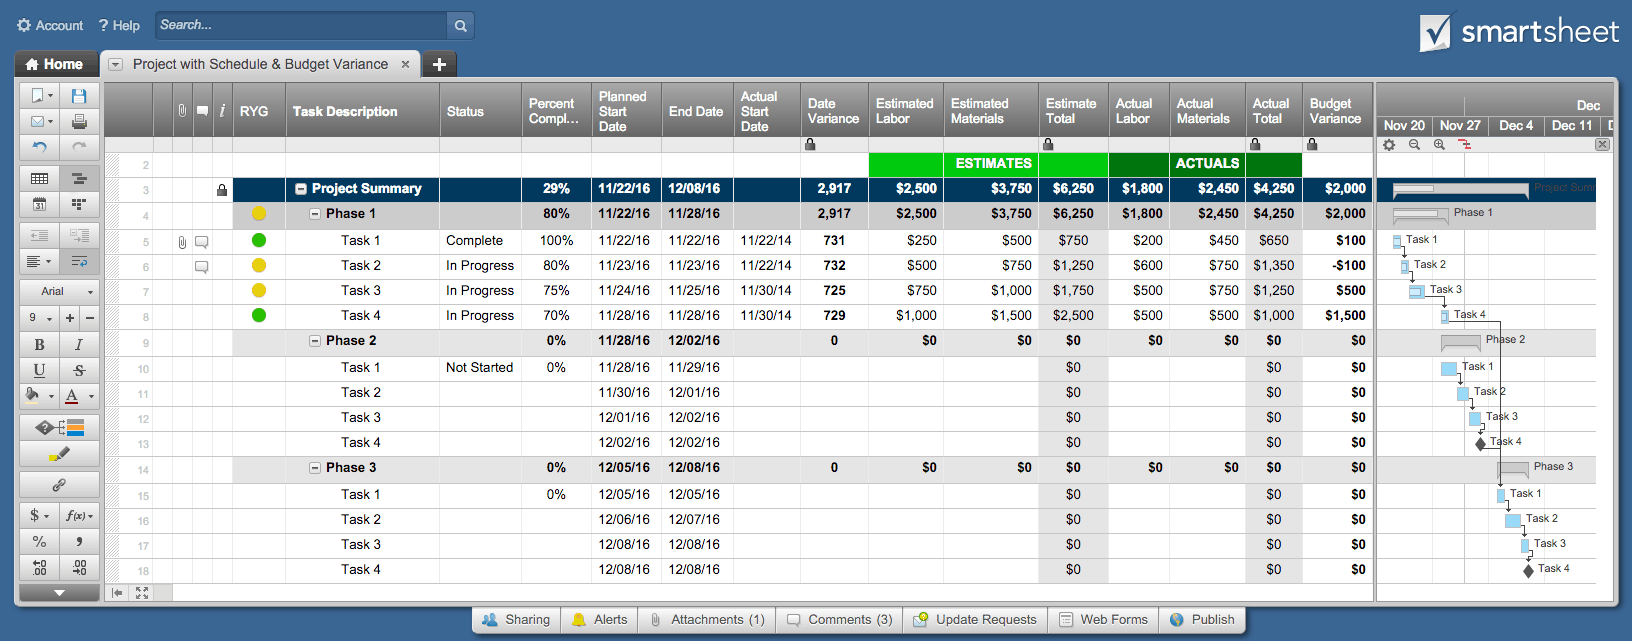 Free excel project management templates project budgeting template smartsheet nvjuhfo Images